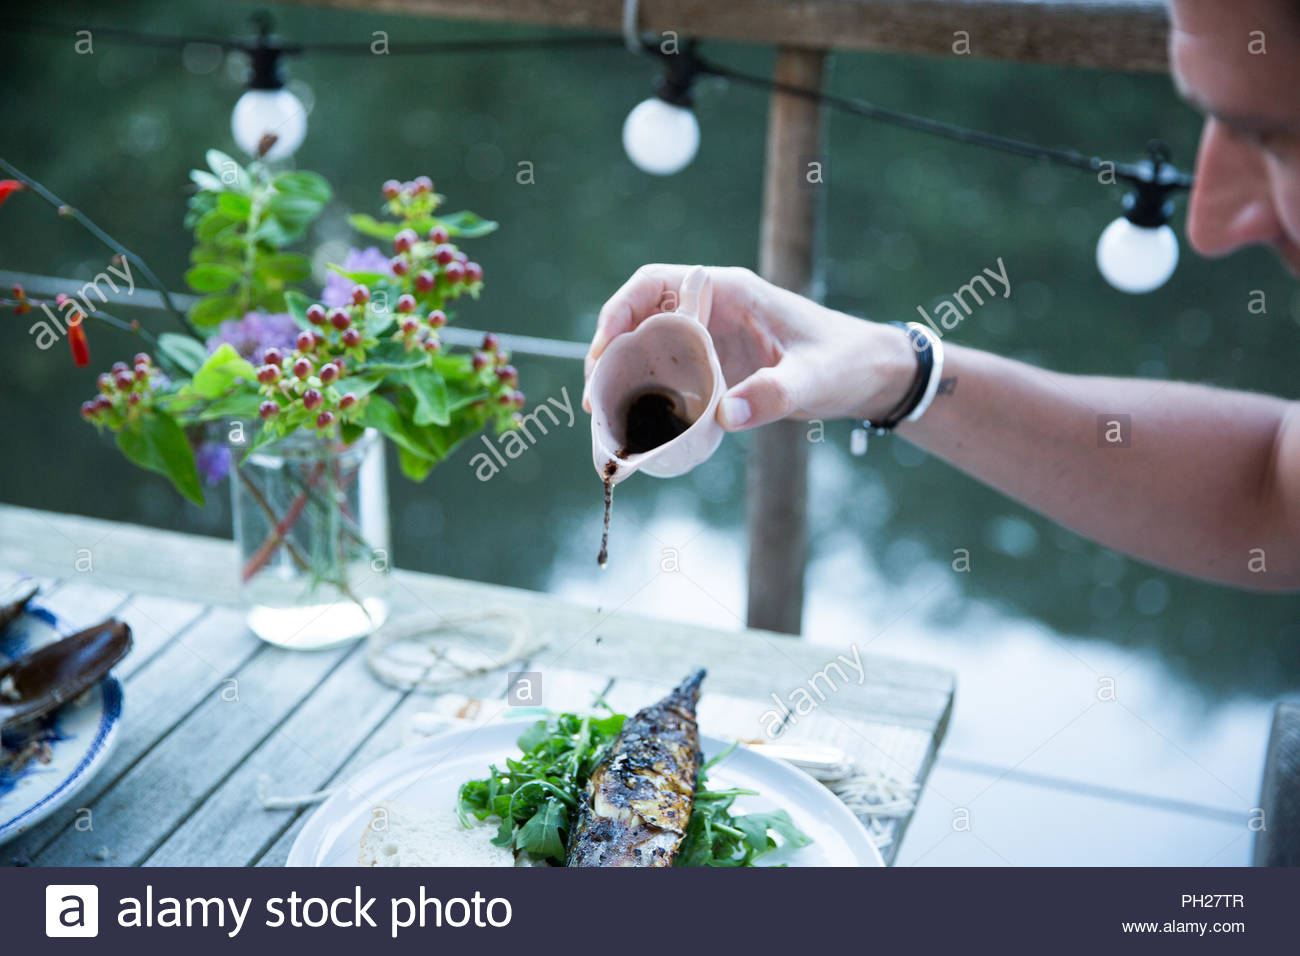 Hand of man pouring vinegar onto grilled fish - Stock Image